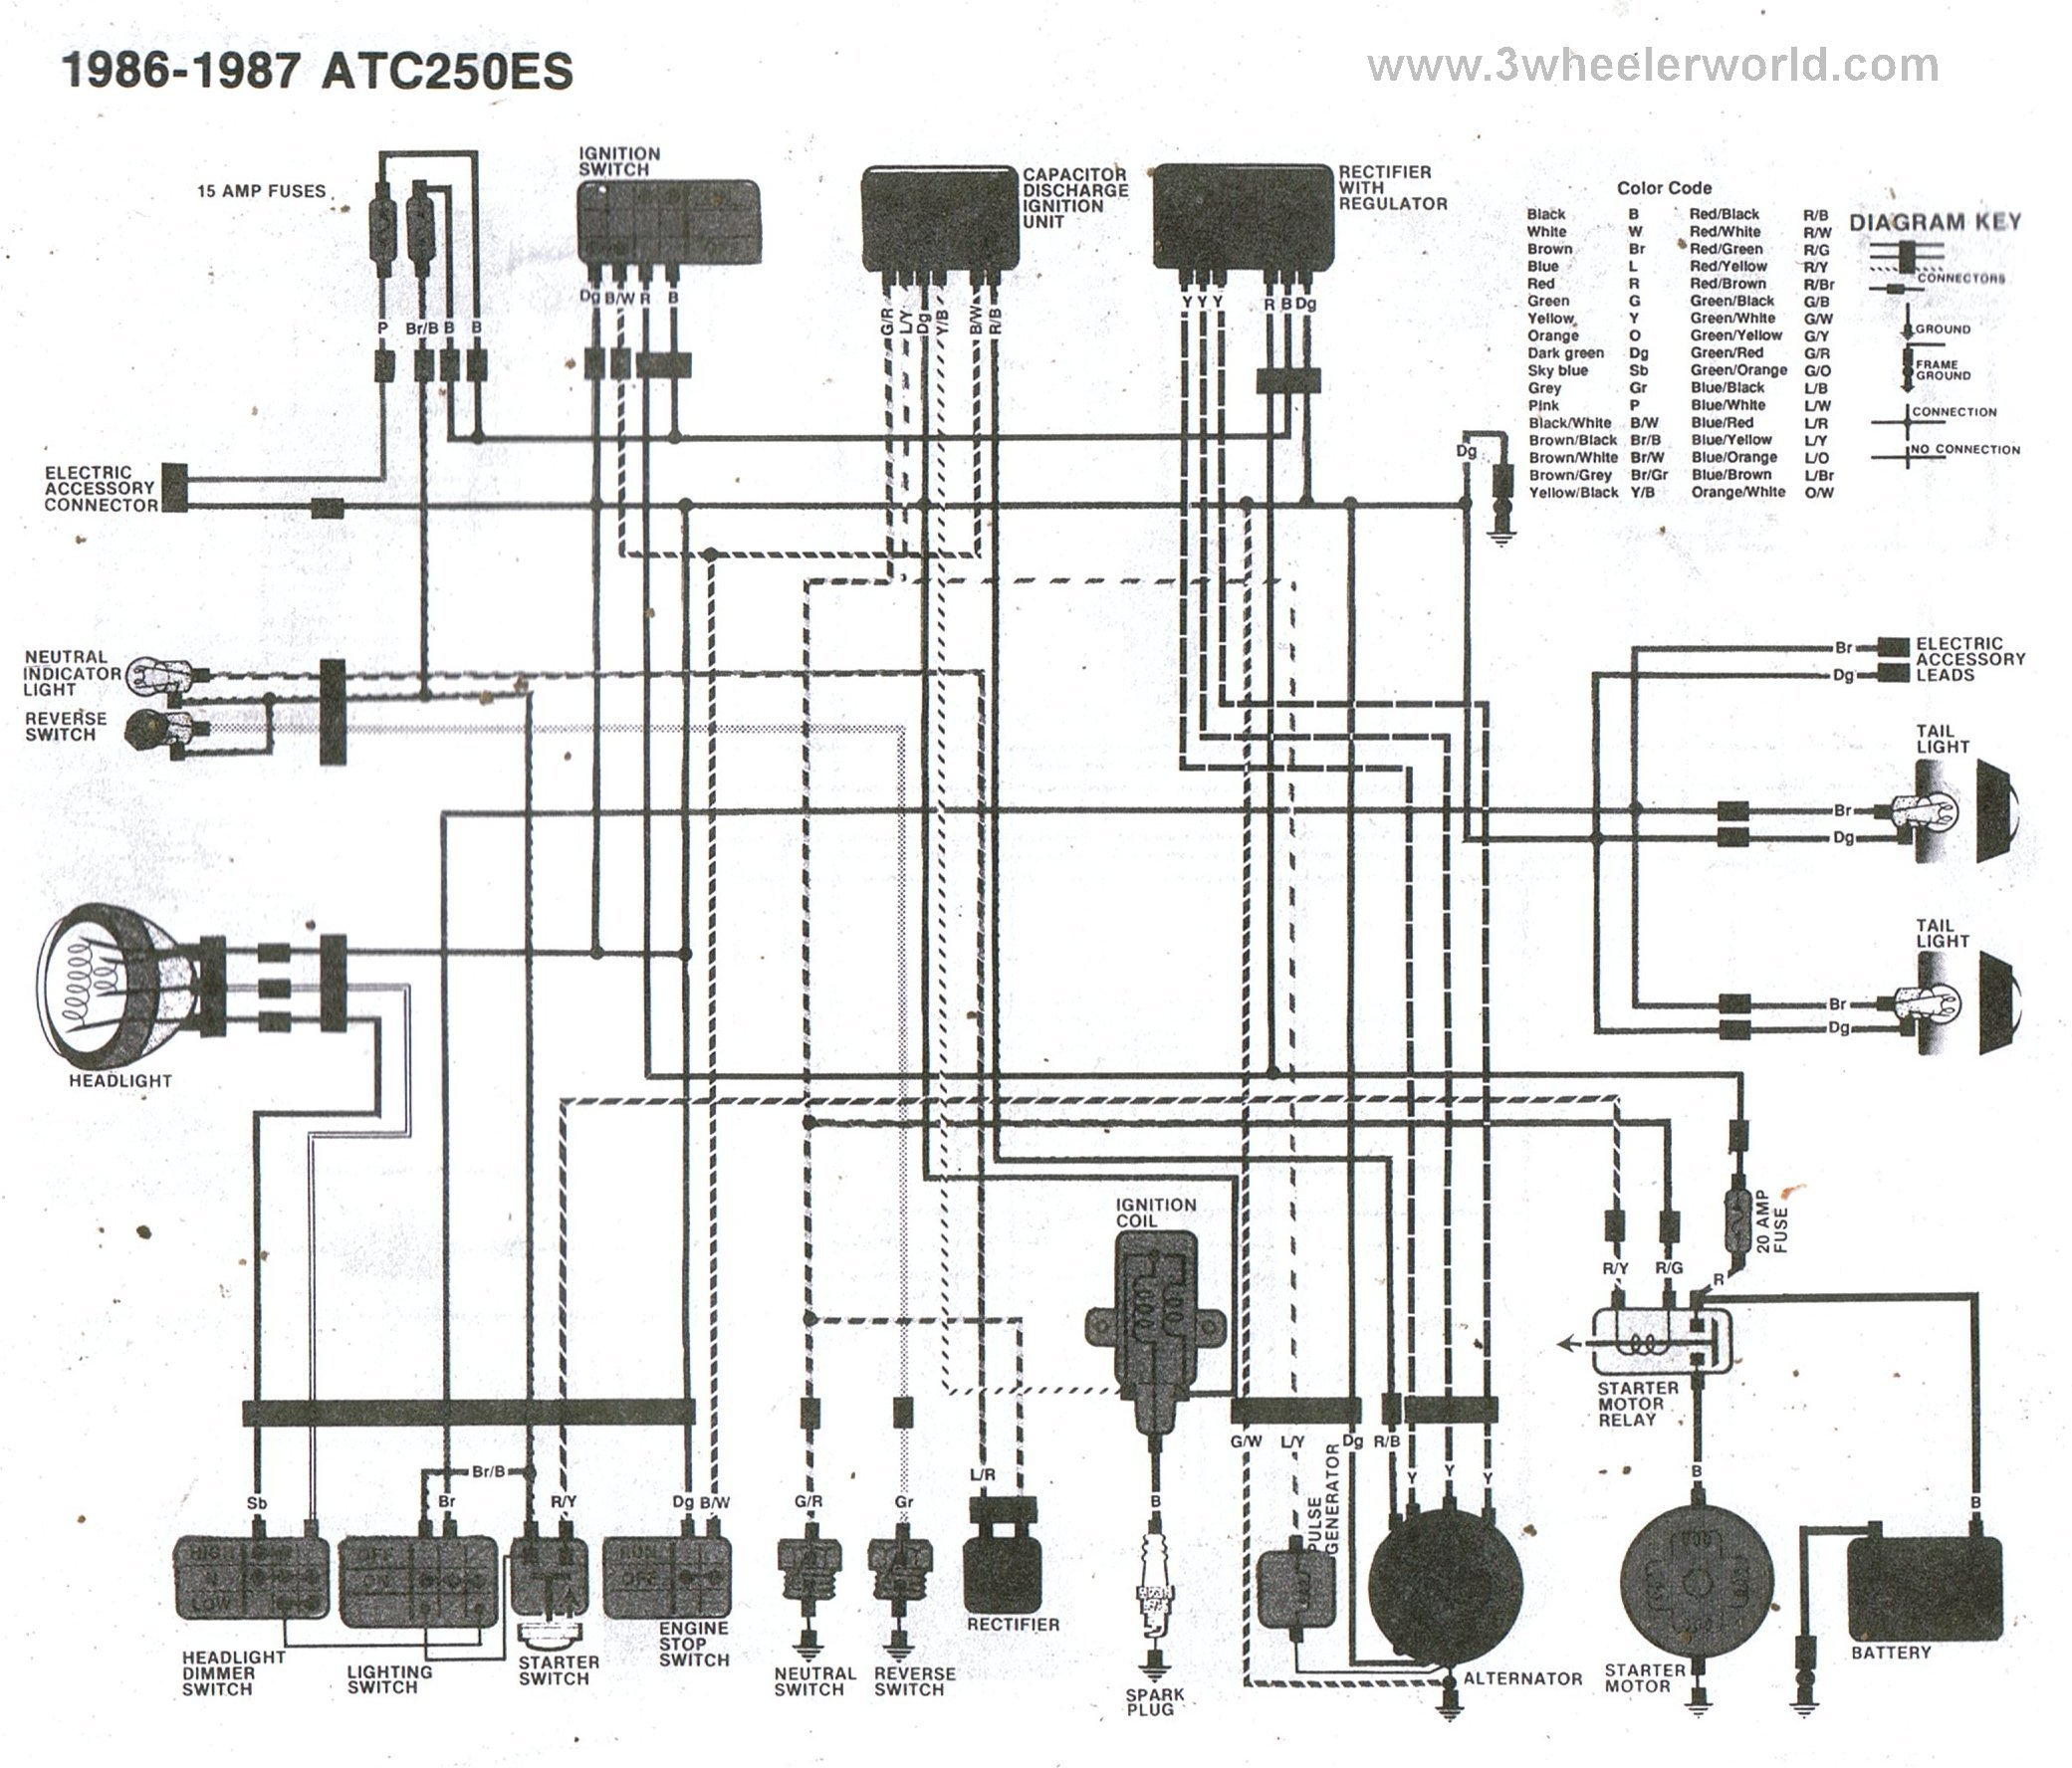 ATC250ESx86Thru87 3 wheeler world tech help honda wiring diagrams yamaha moto 4 250 wiring diagrams at alyssarenee.co